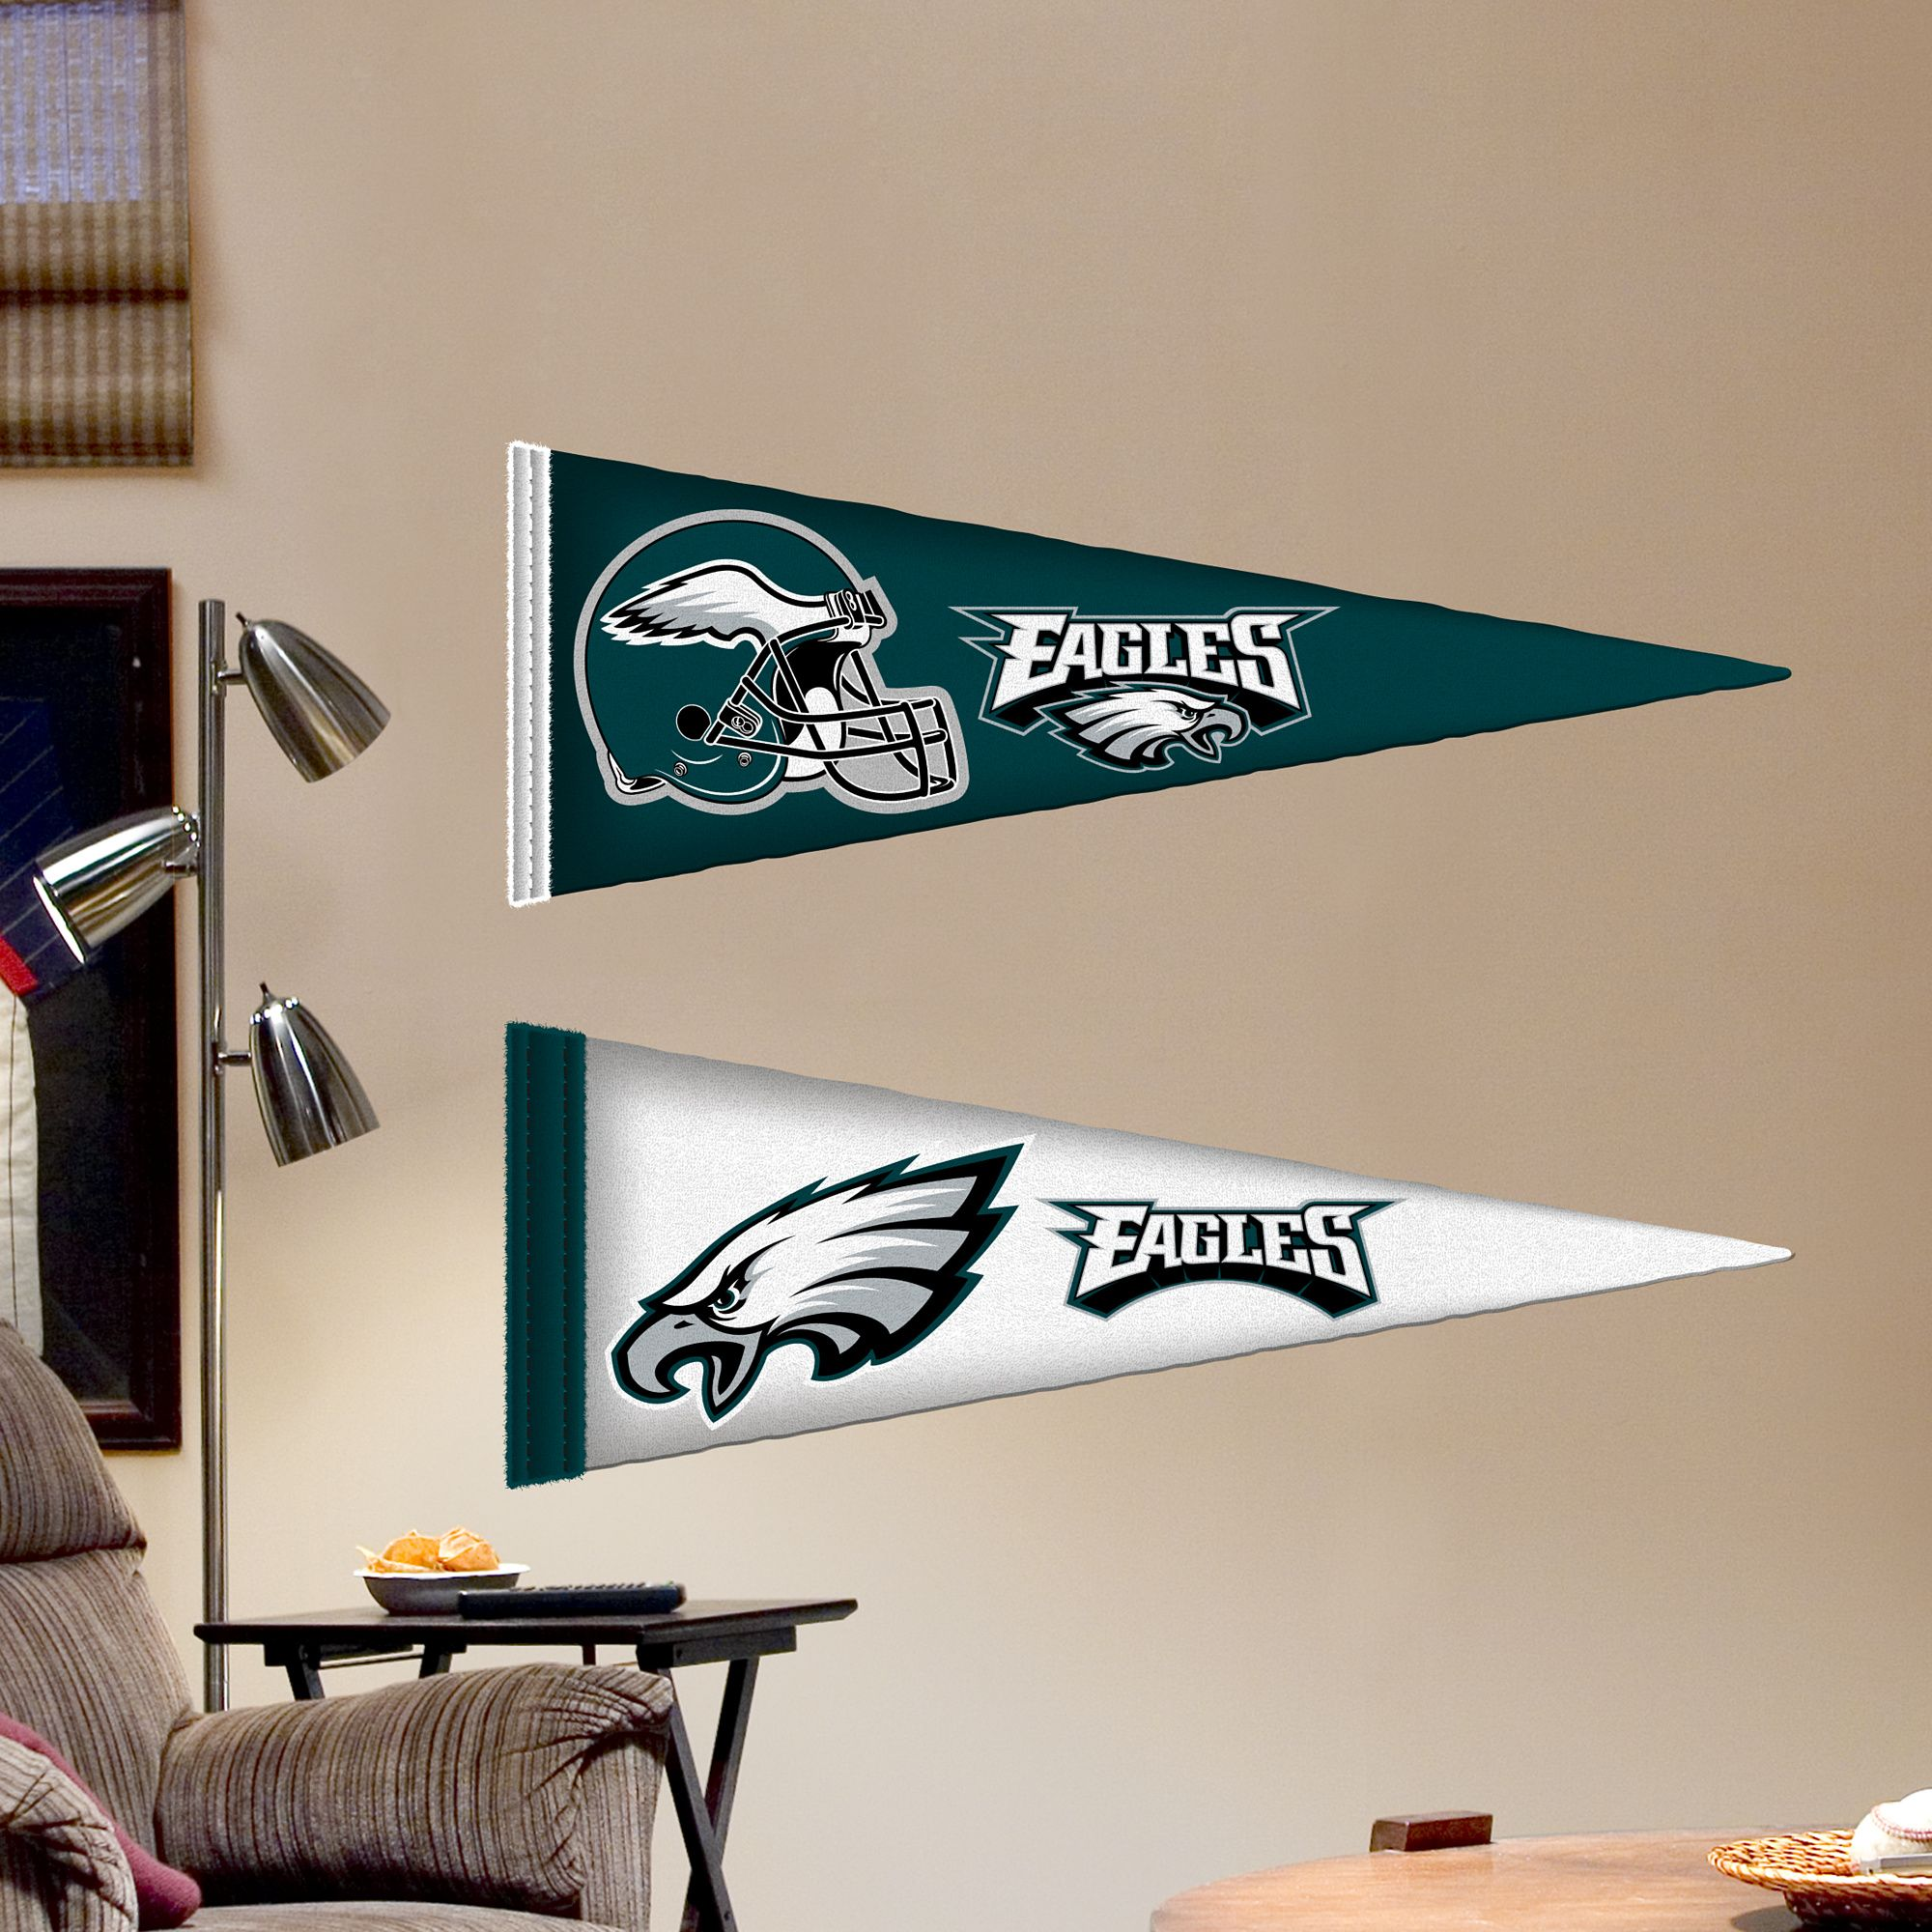 Philadelphia Eagles Pennants - Fathead Jr. | Philadelphia Eagles Wall Decal & Philadelphia Eagles Pennants - Fathead Jr. | Philadelphia Eagles ...